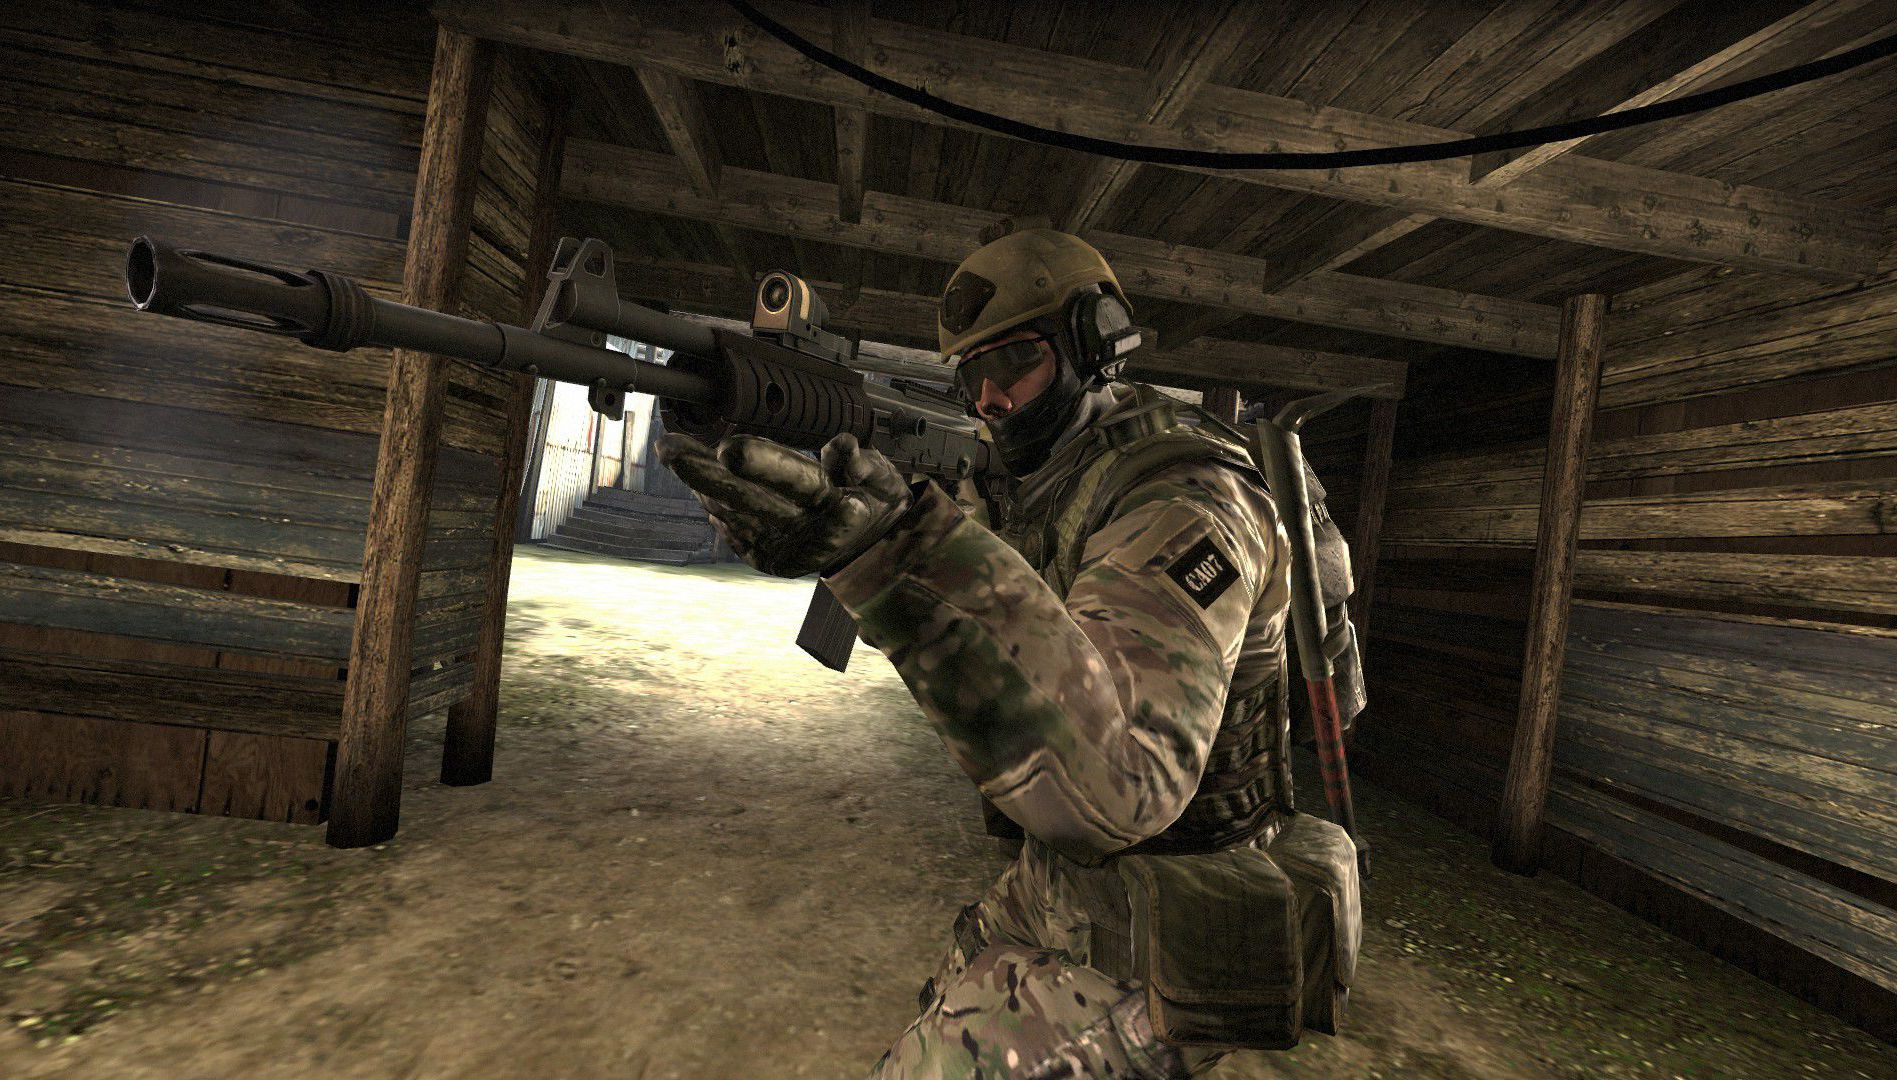 Counter-Strike may be next game to enter Battle Royale craze | News